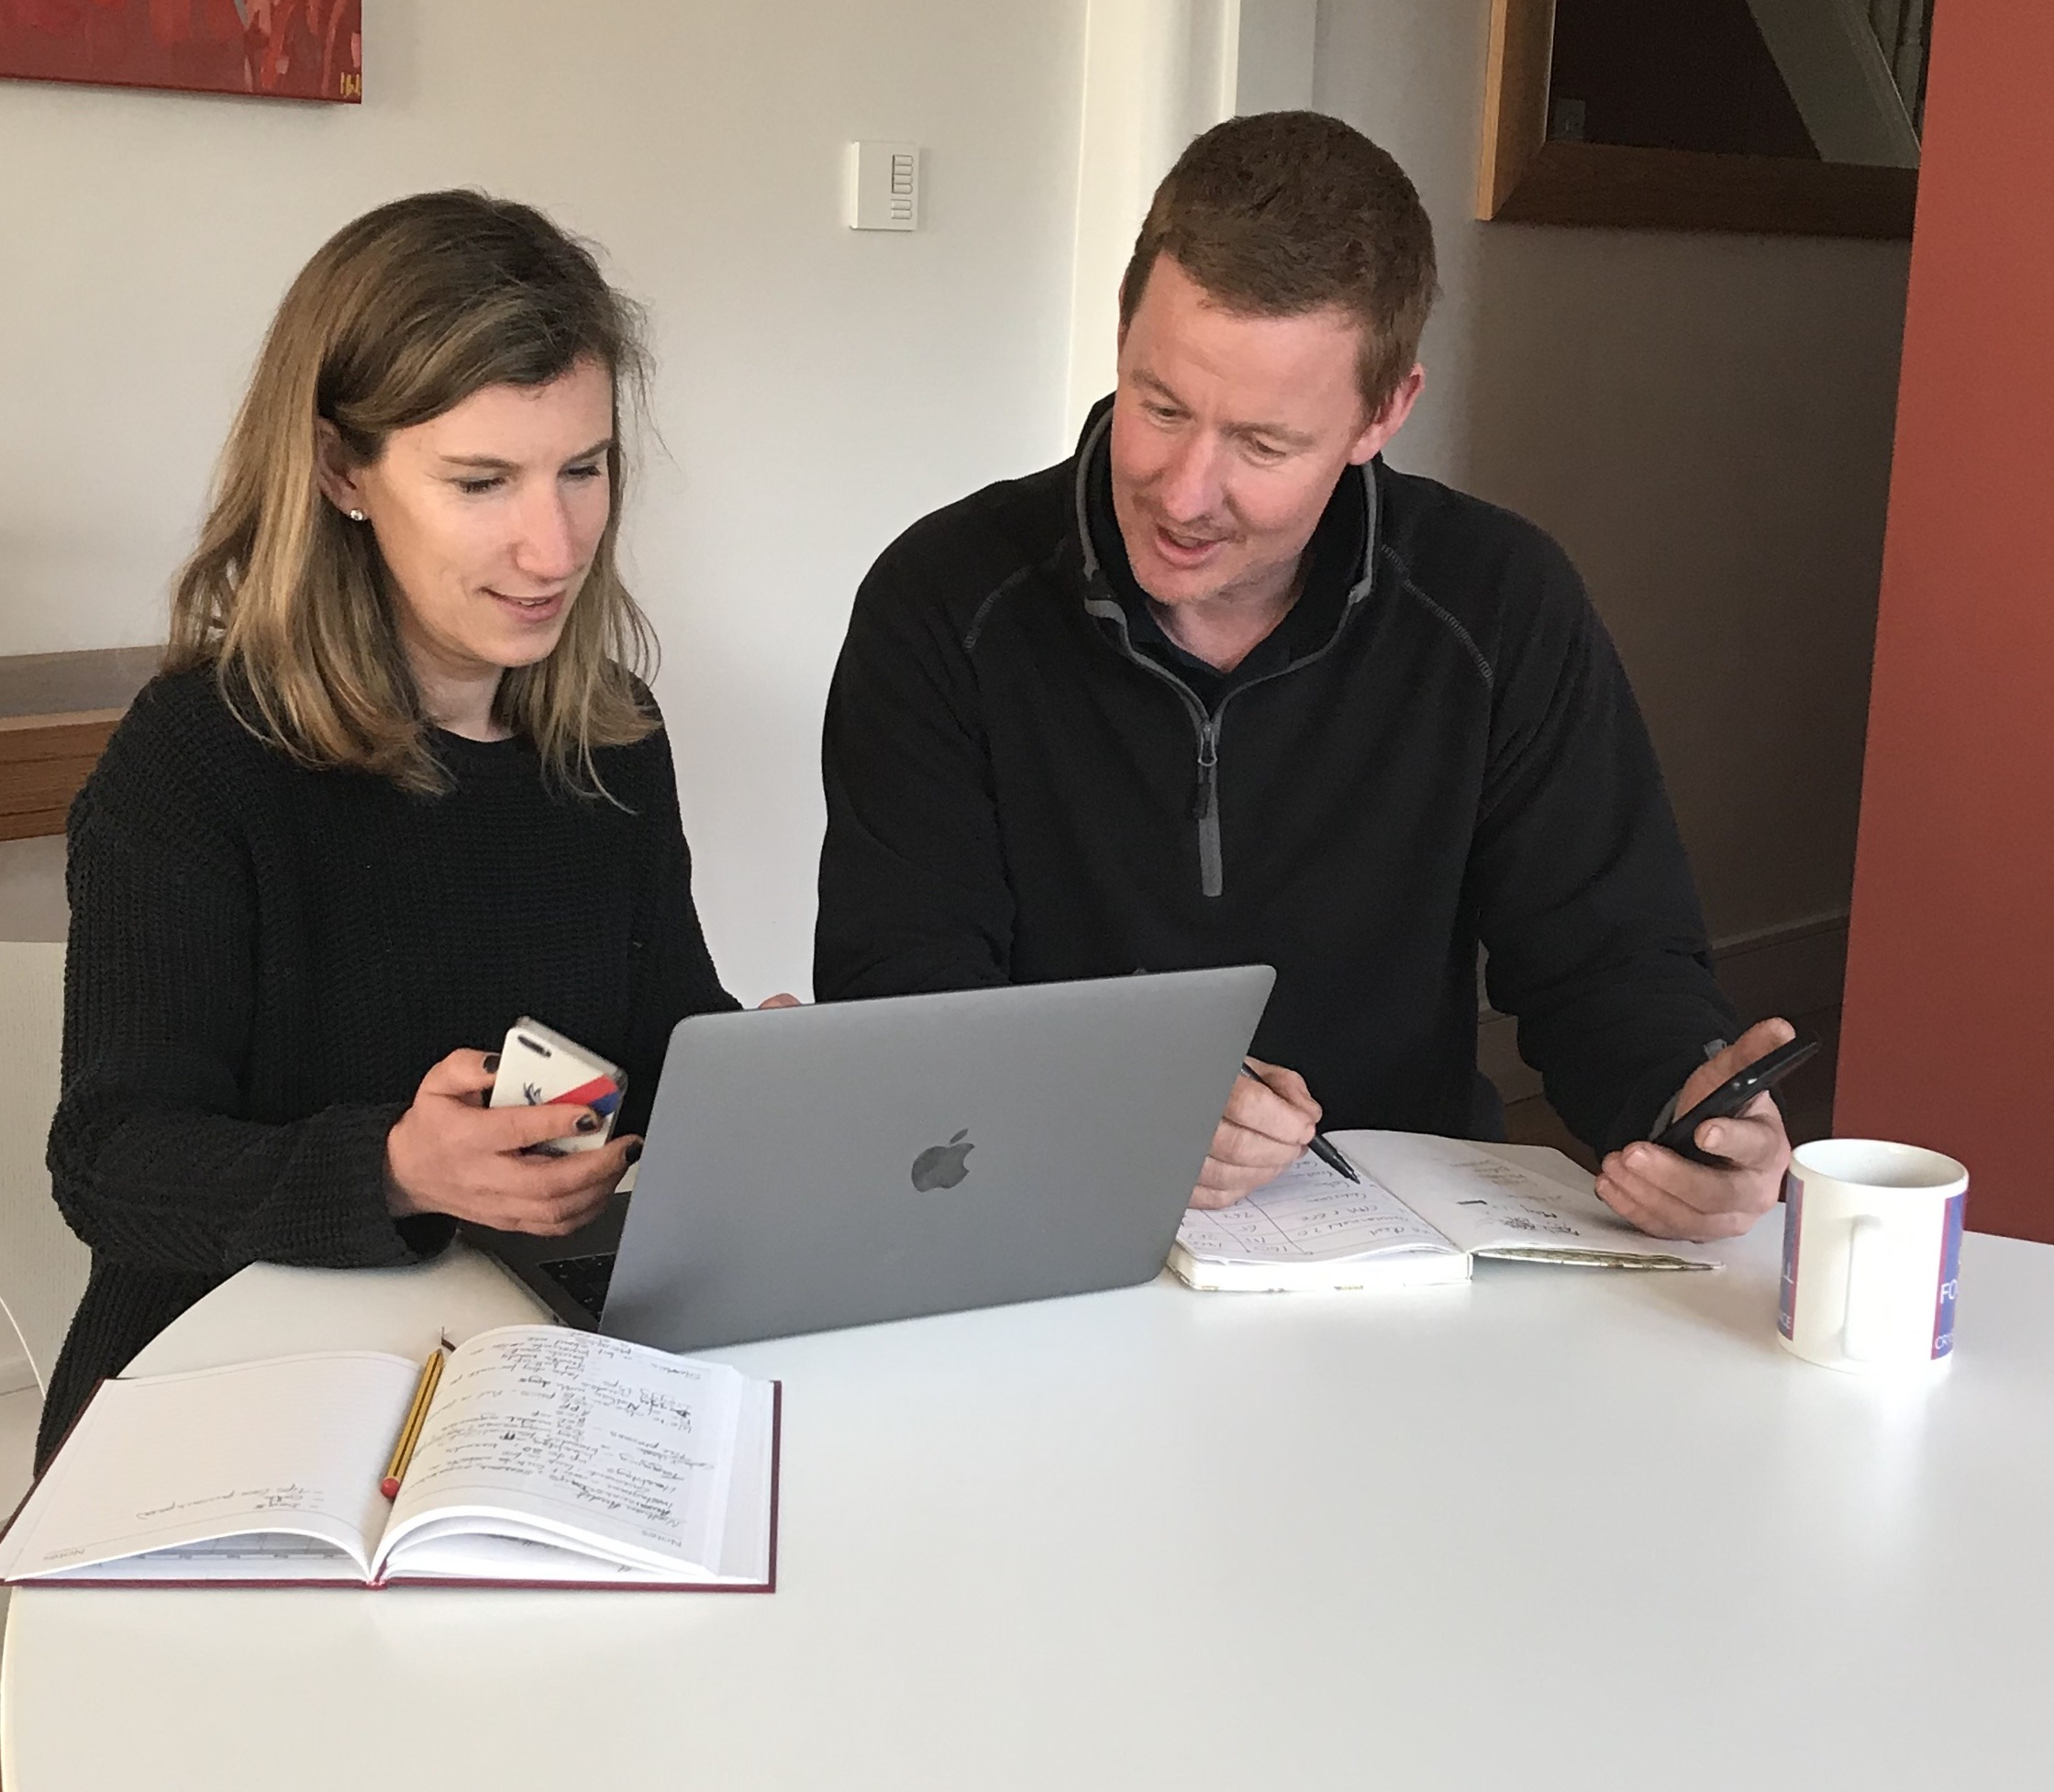 Anna from hellosocial.media working with a male client